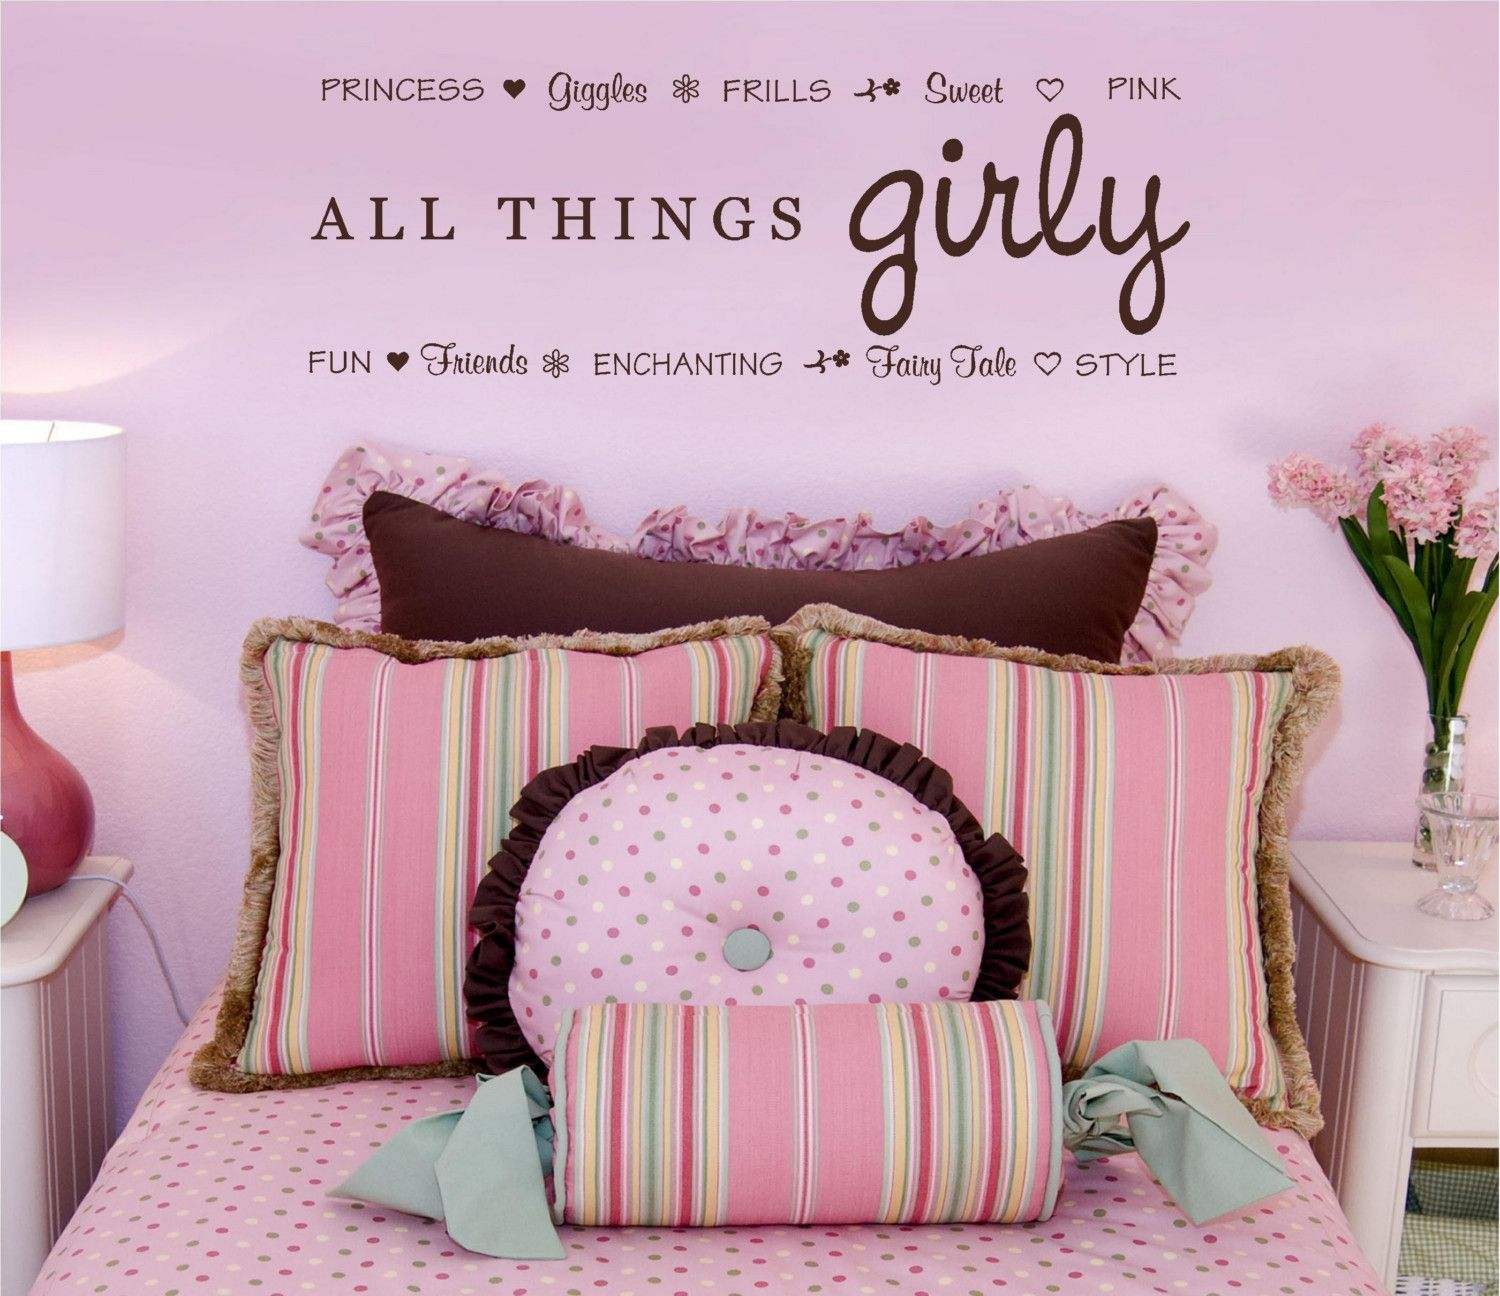 Girly Pink Nursery Decor: 36x13 All Things Girly Princess Giggles Pink Fairy Tale